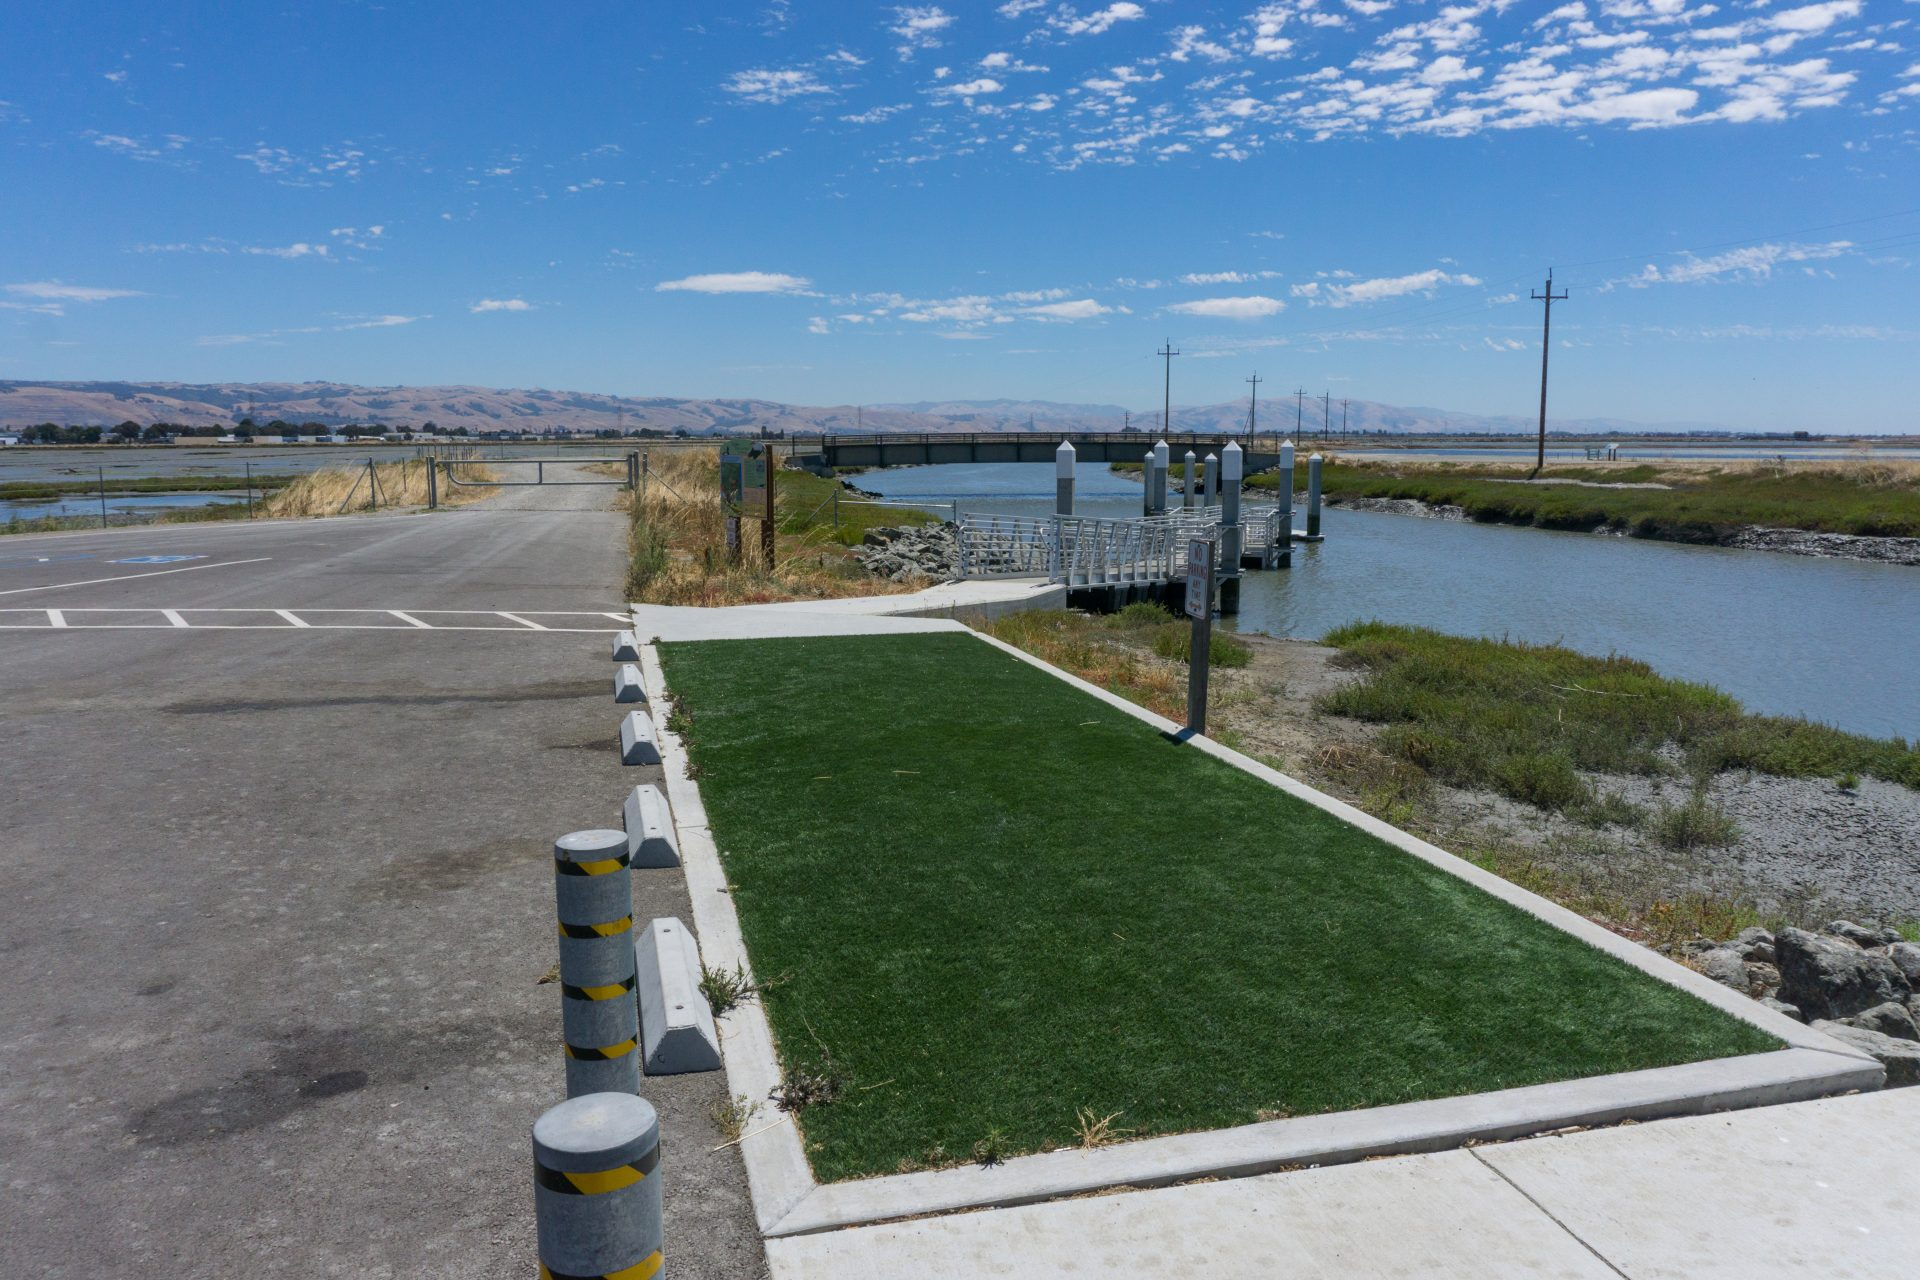 flat area covered in astroturf with parking lot on left and dock on right